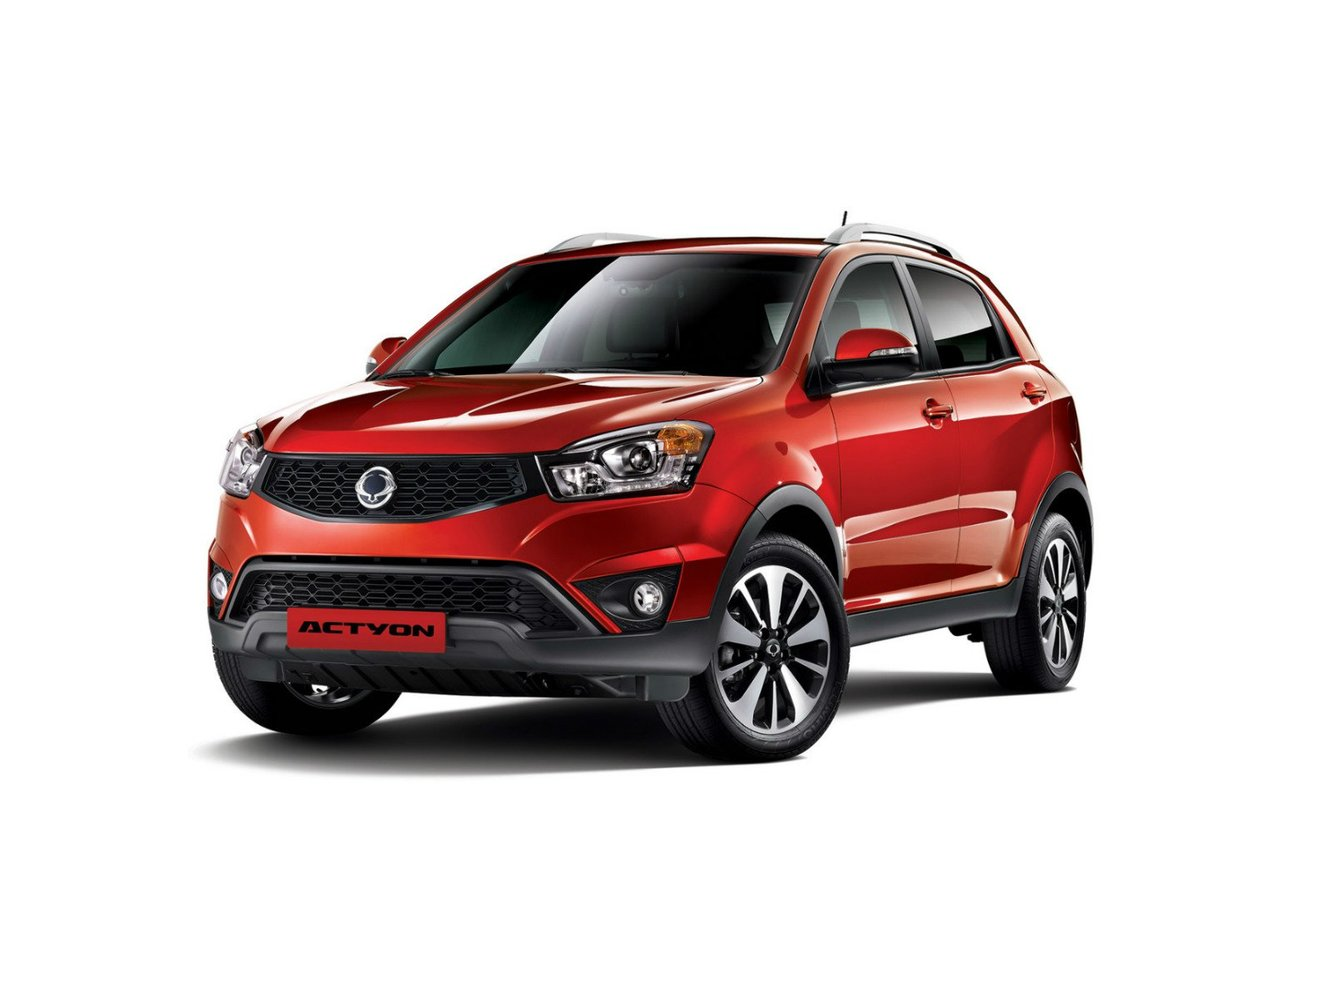 SsangYong Actyon 2013 - 2016